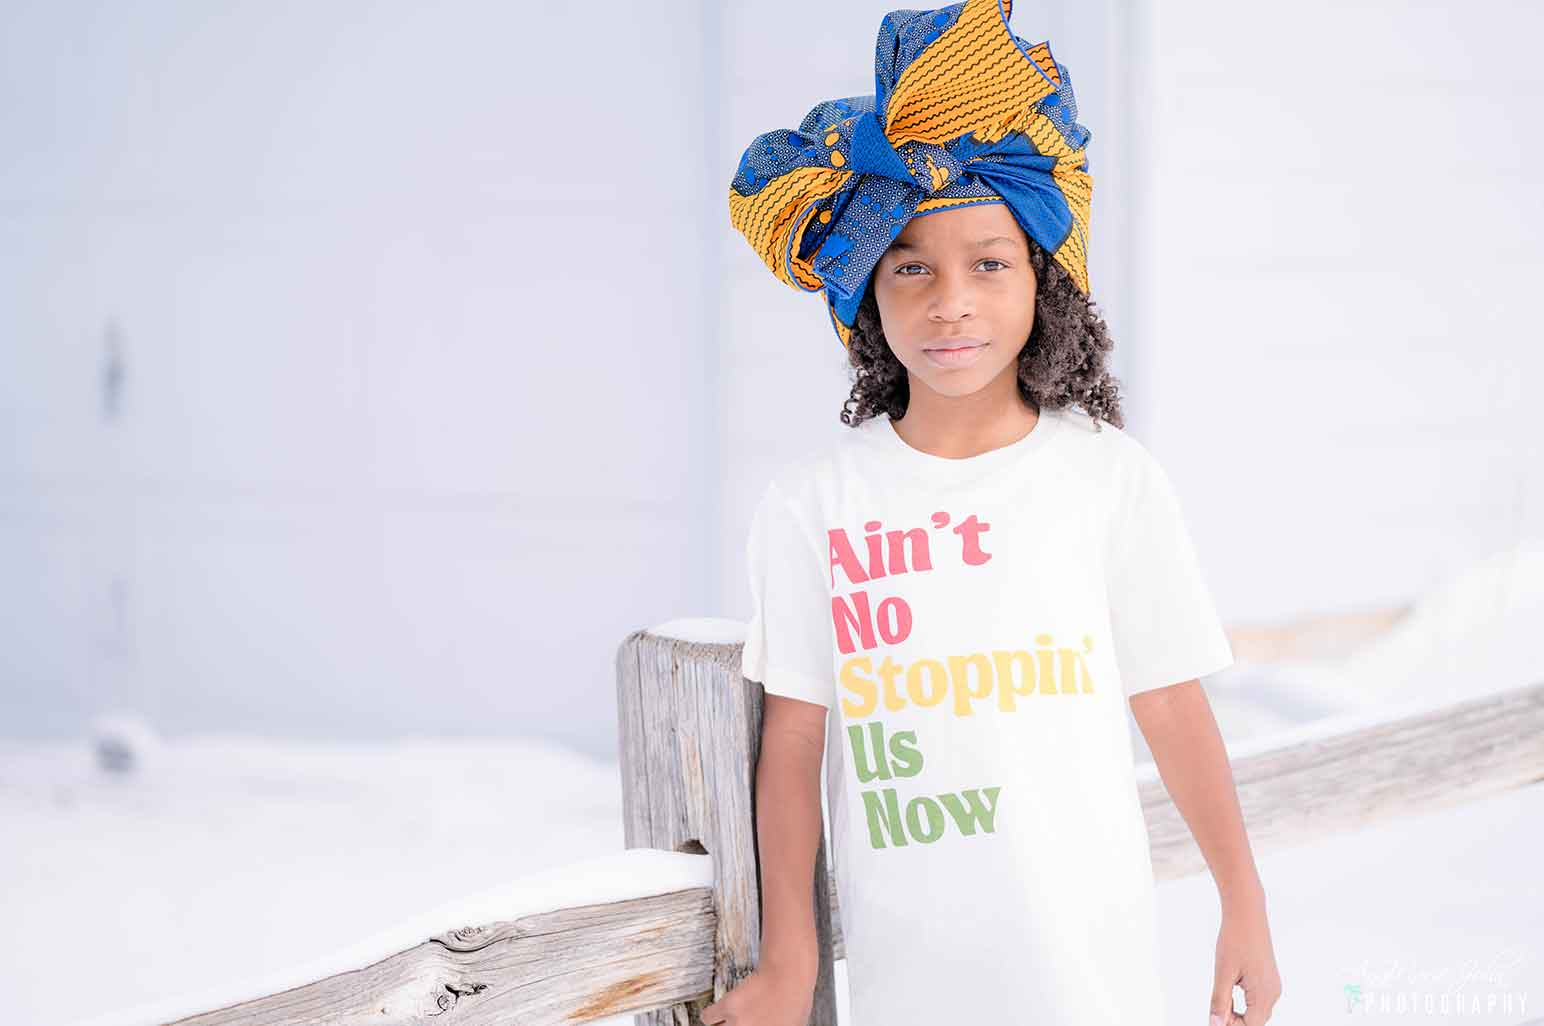 Child wearing an ain't no stopping us now tee